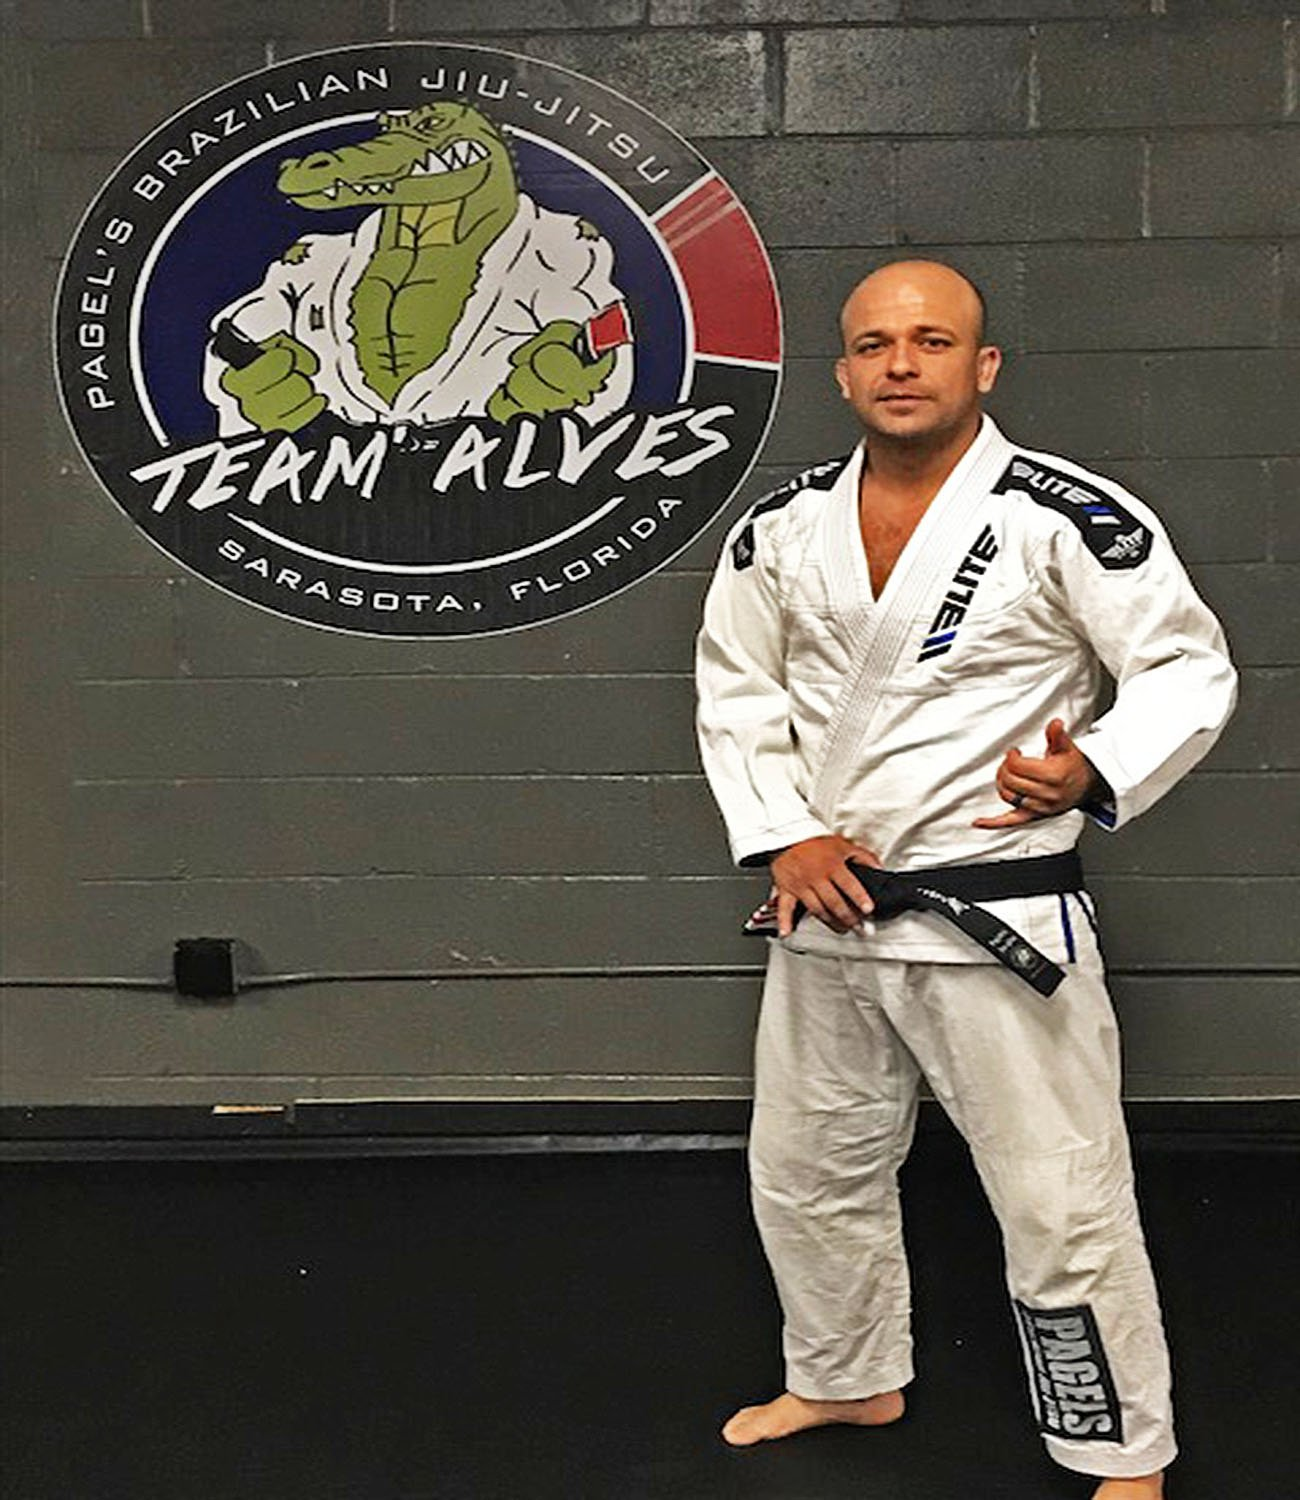 Elite Sports Team Elite Bjj Fighter Emmanuel Alves Image6